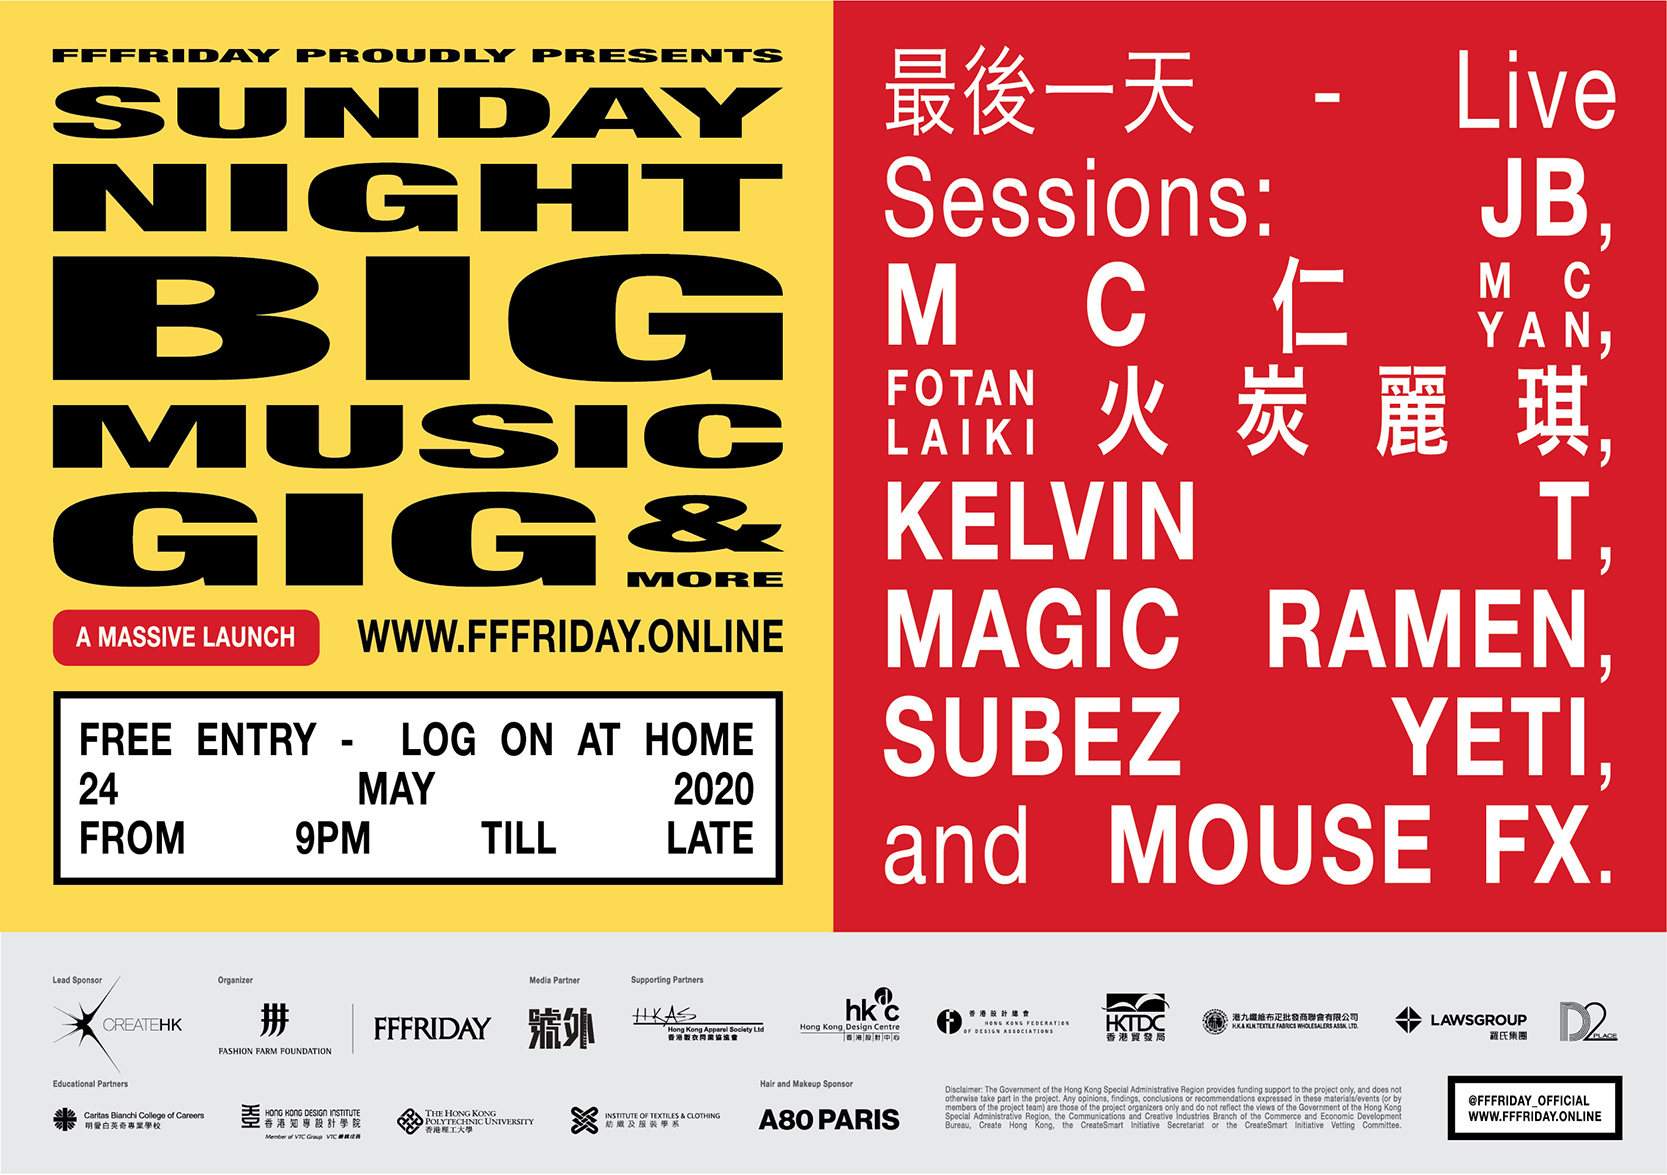 Ron Wan Sunday Night Big Music Gig Poster Design for FFFRIDAY 2020 and Fashion Farm Foundation in Hong Kong.